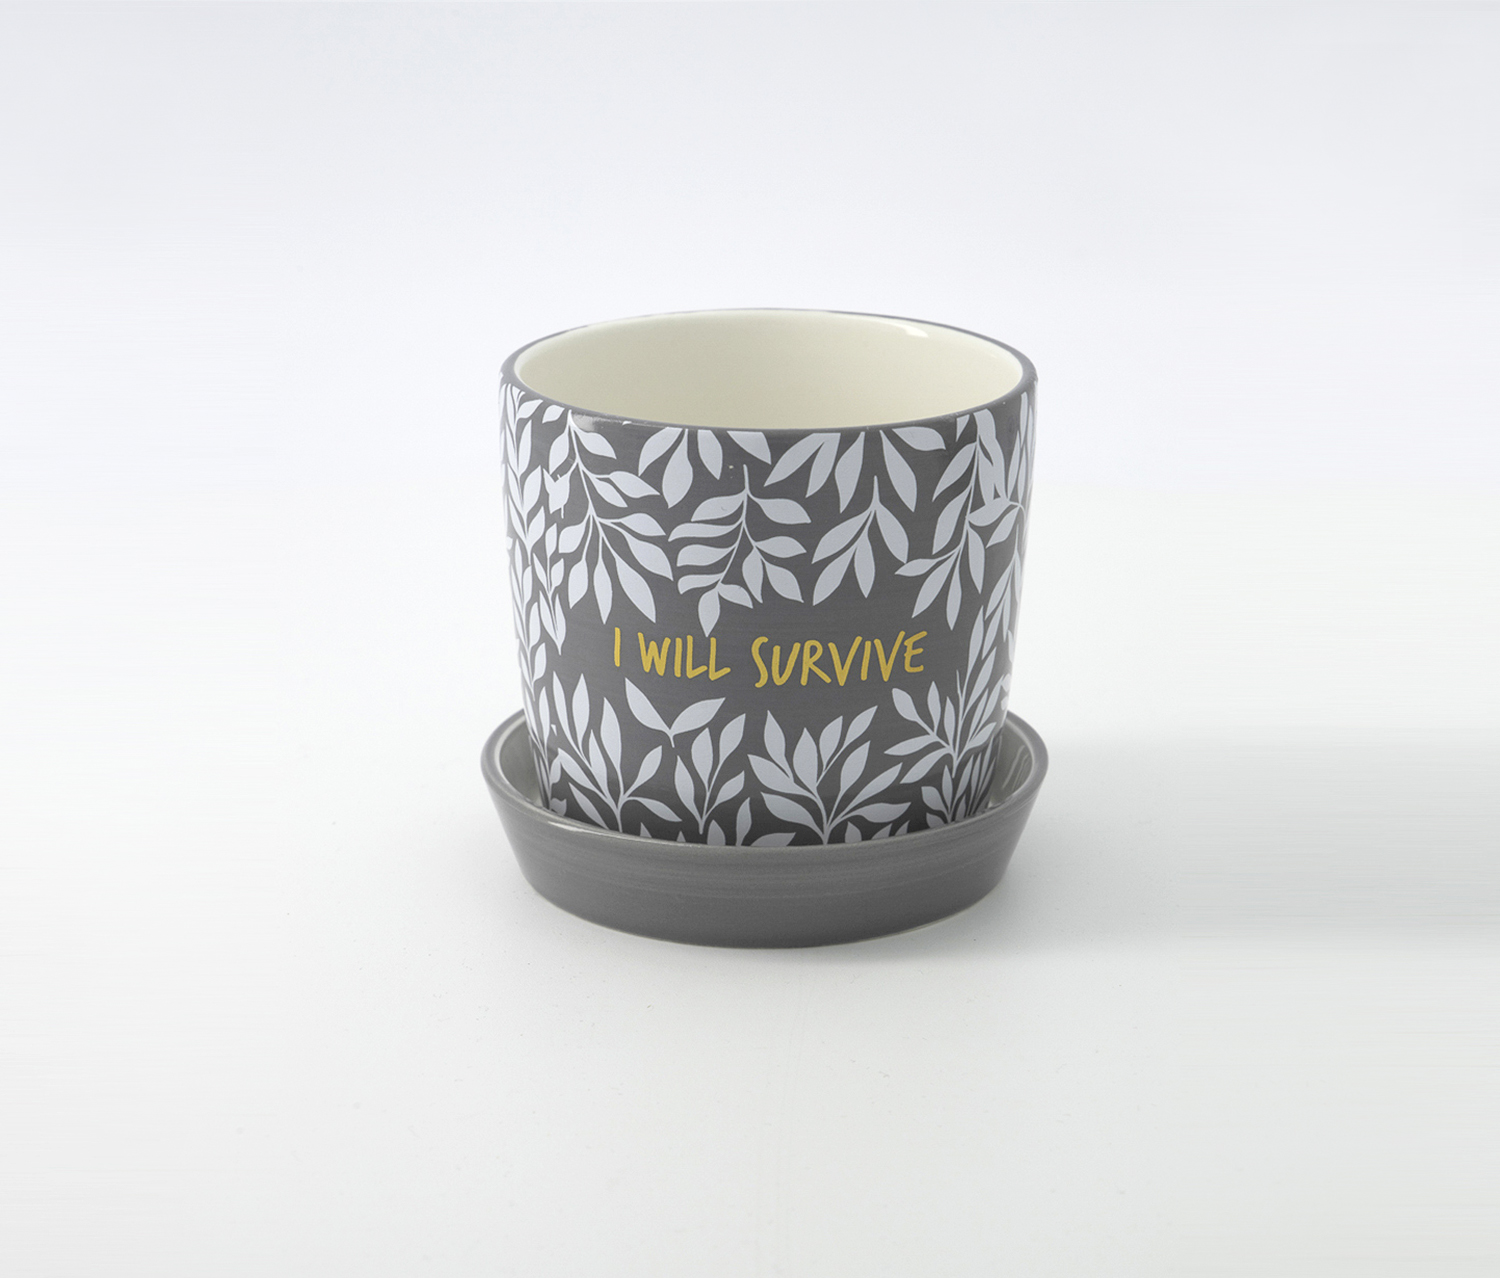 Cylinder With Dish Planter, Grey/White/Gold